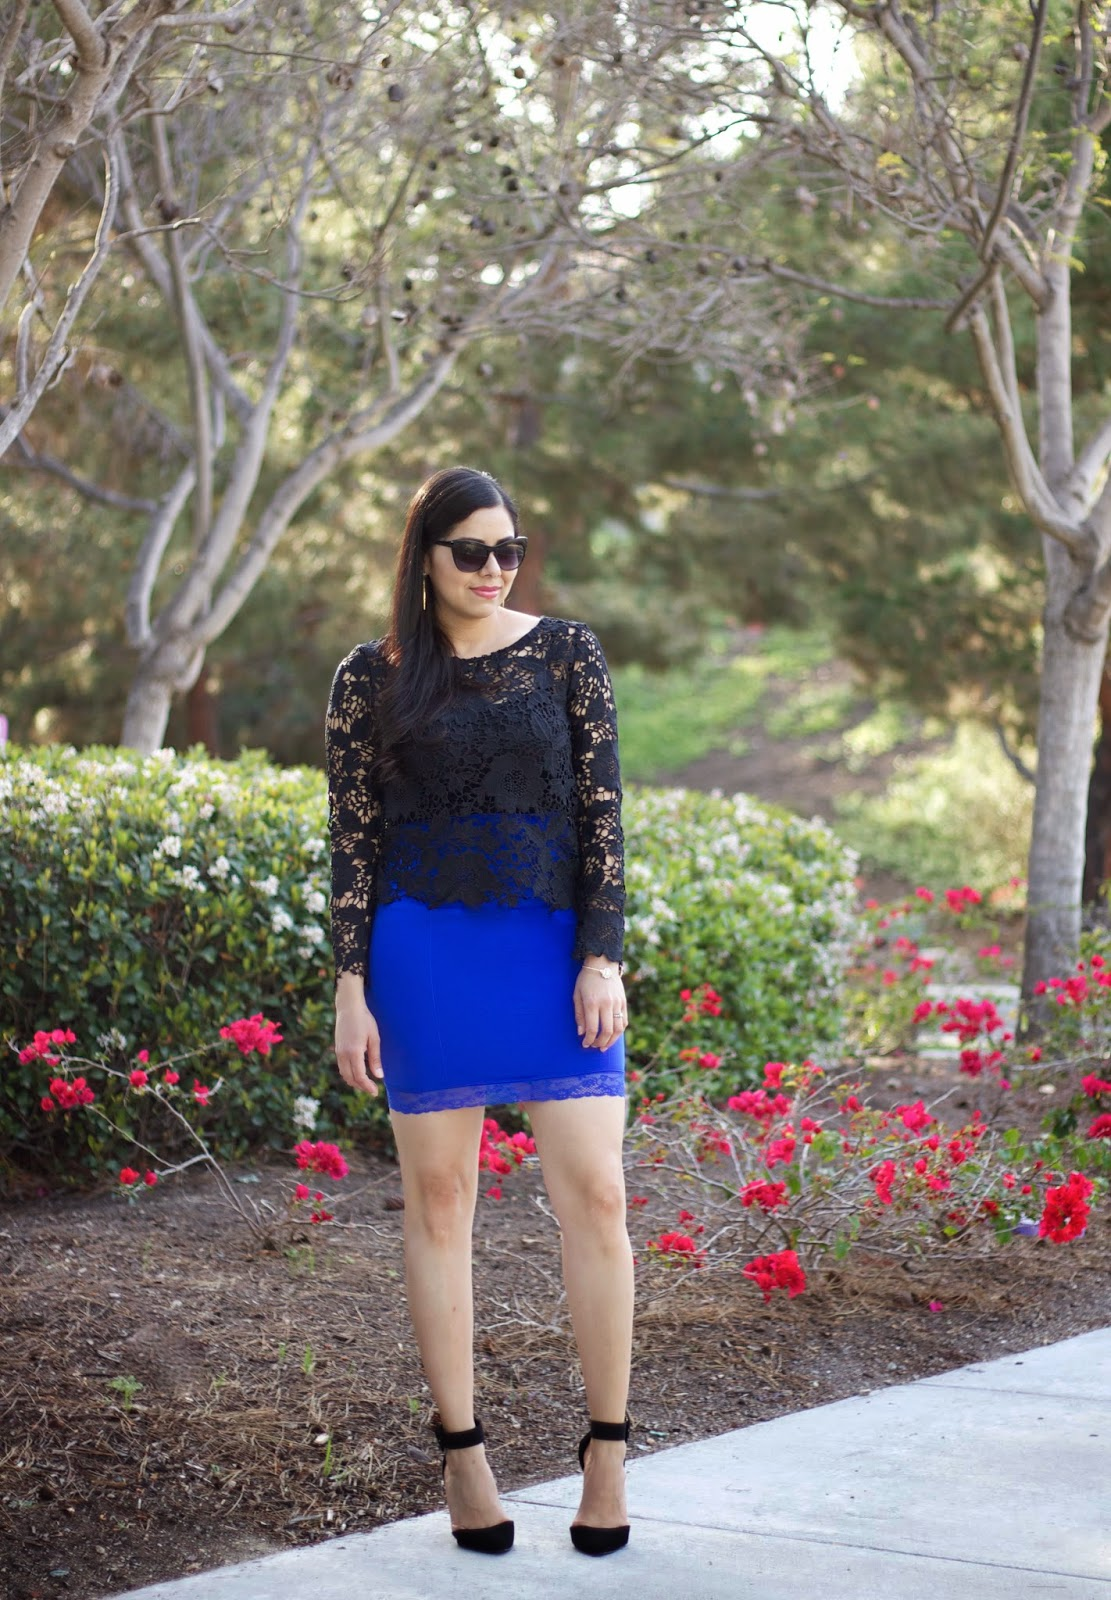 how to wear shapewear as outerwear, jewel toned shapewear, how to wear black lace, girls night out outfit